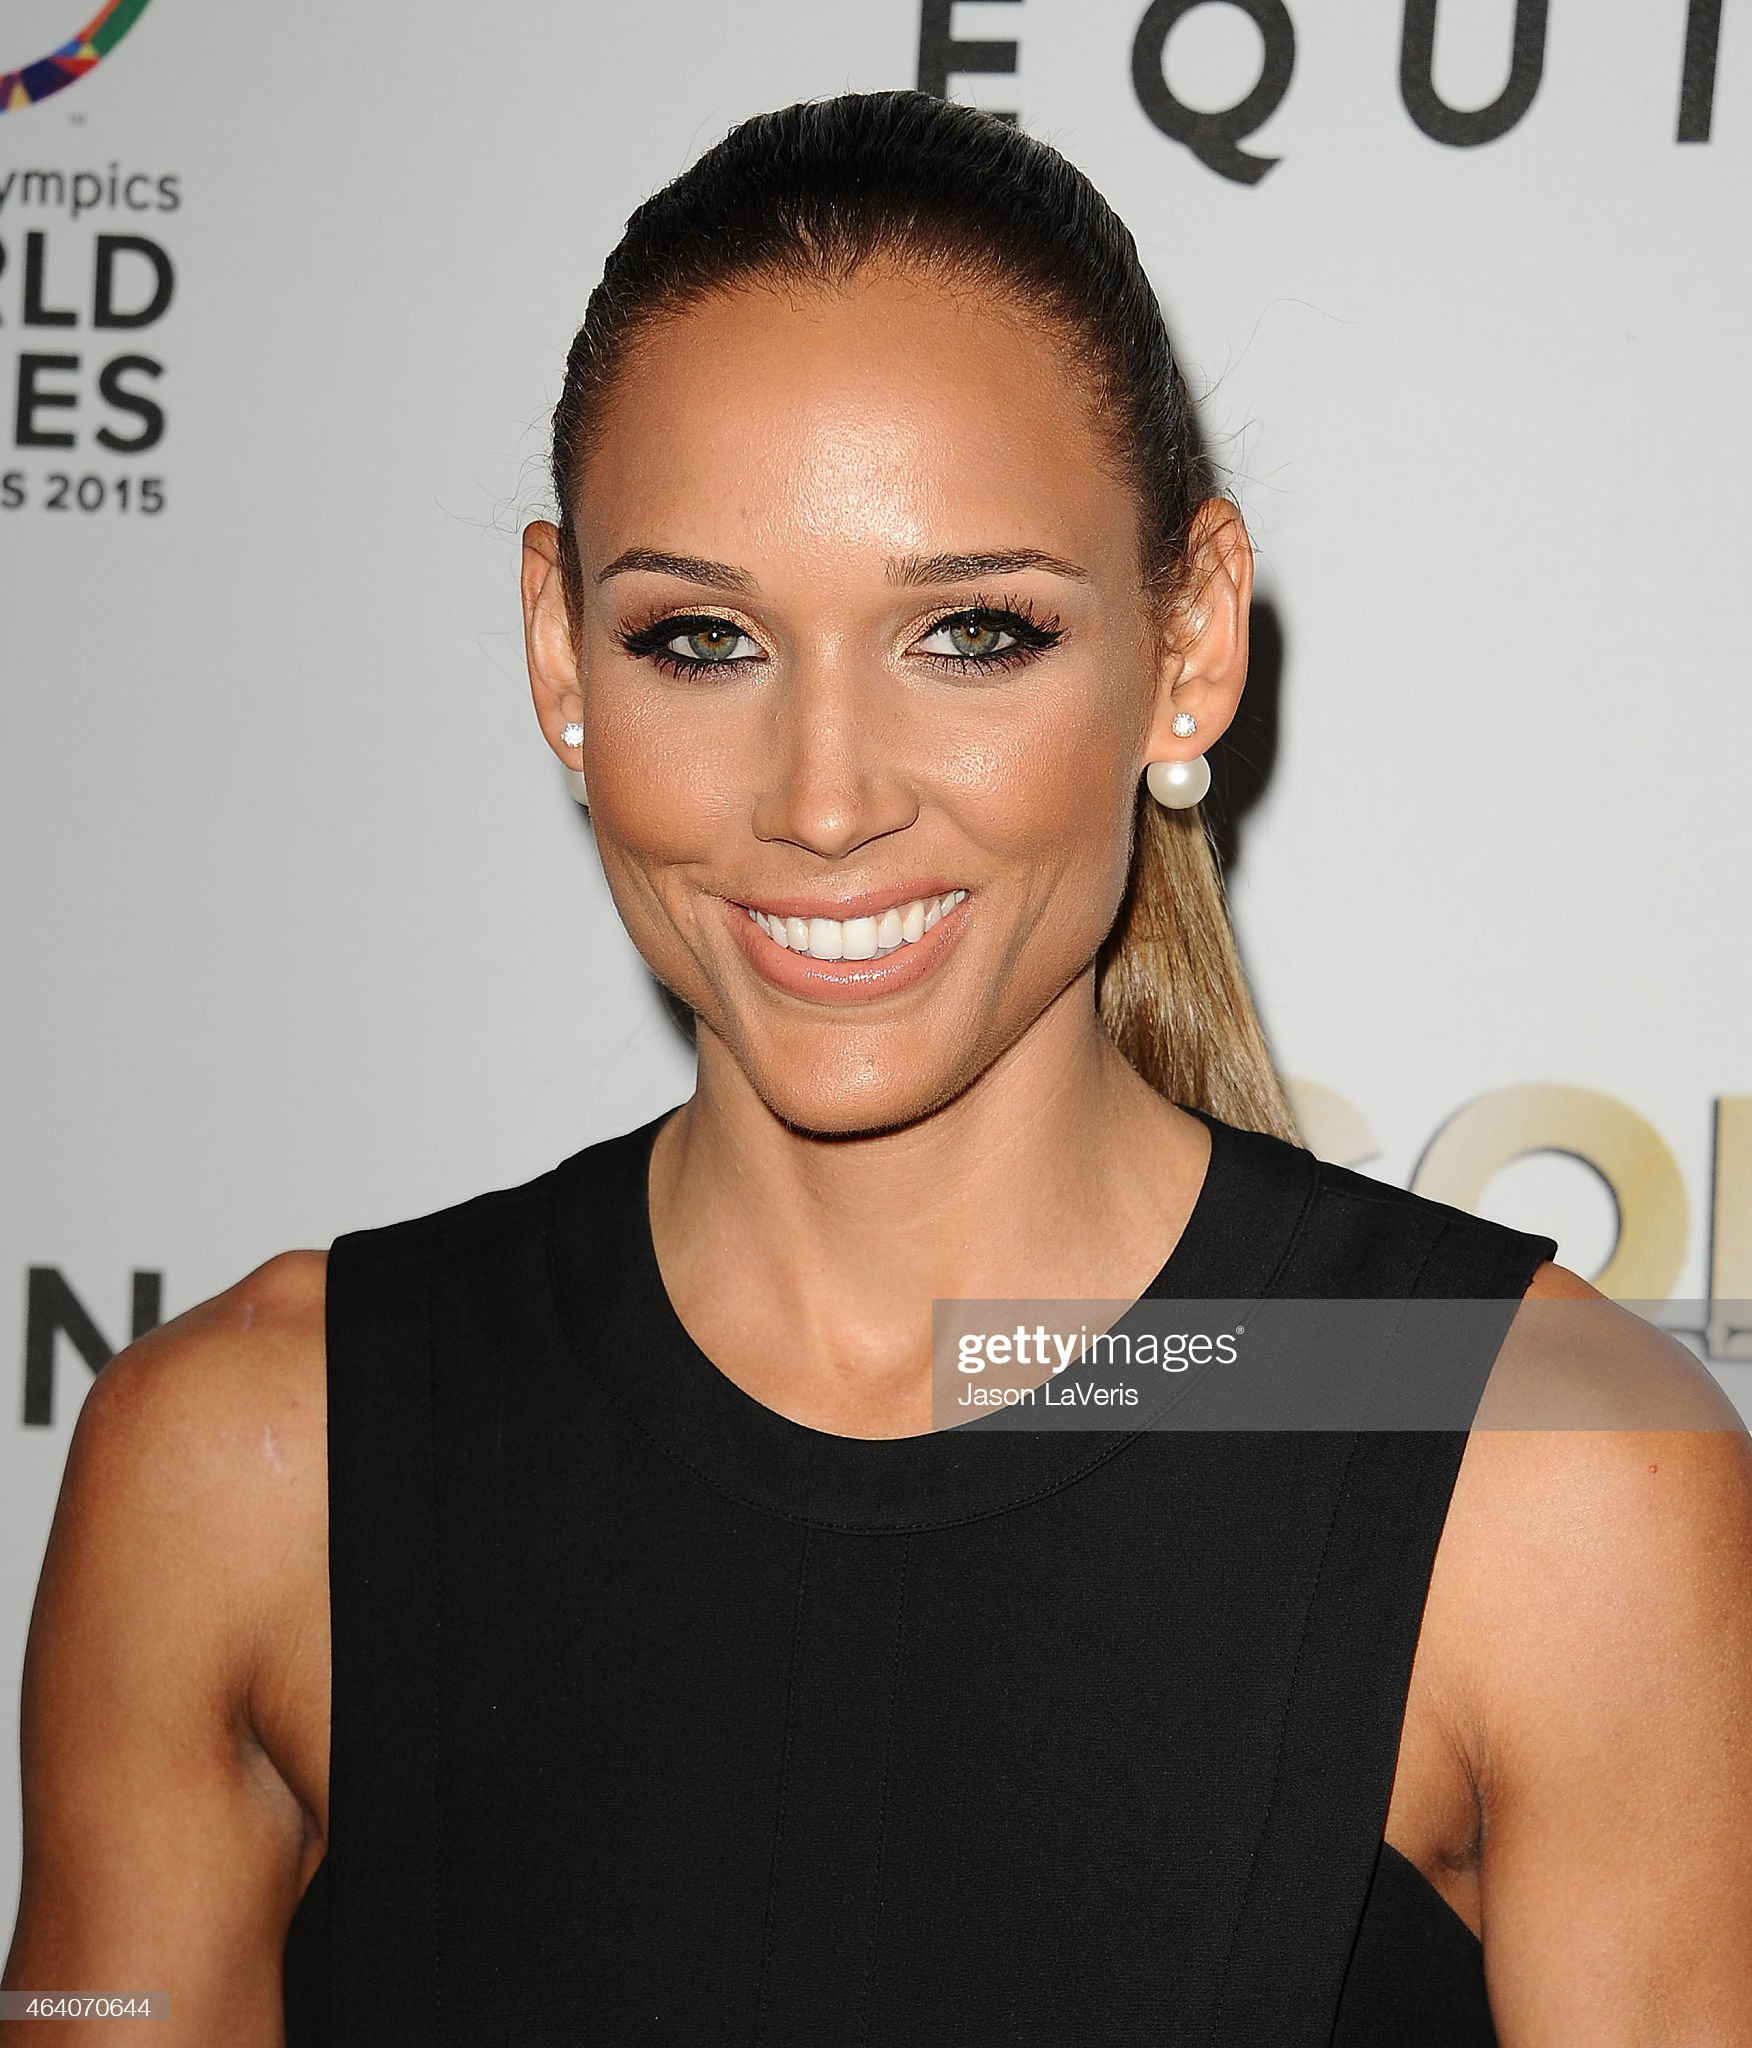 Top 80 Famosas Foroalturas - Página 2 Lolo-jones-attends-the-3rd-annual-gold-meets-golden-at-equinox-sports-picture-id464070644?s=2048x2048